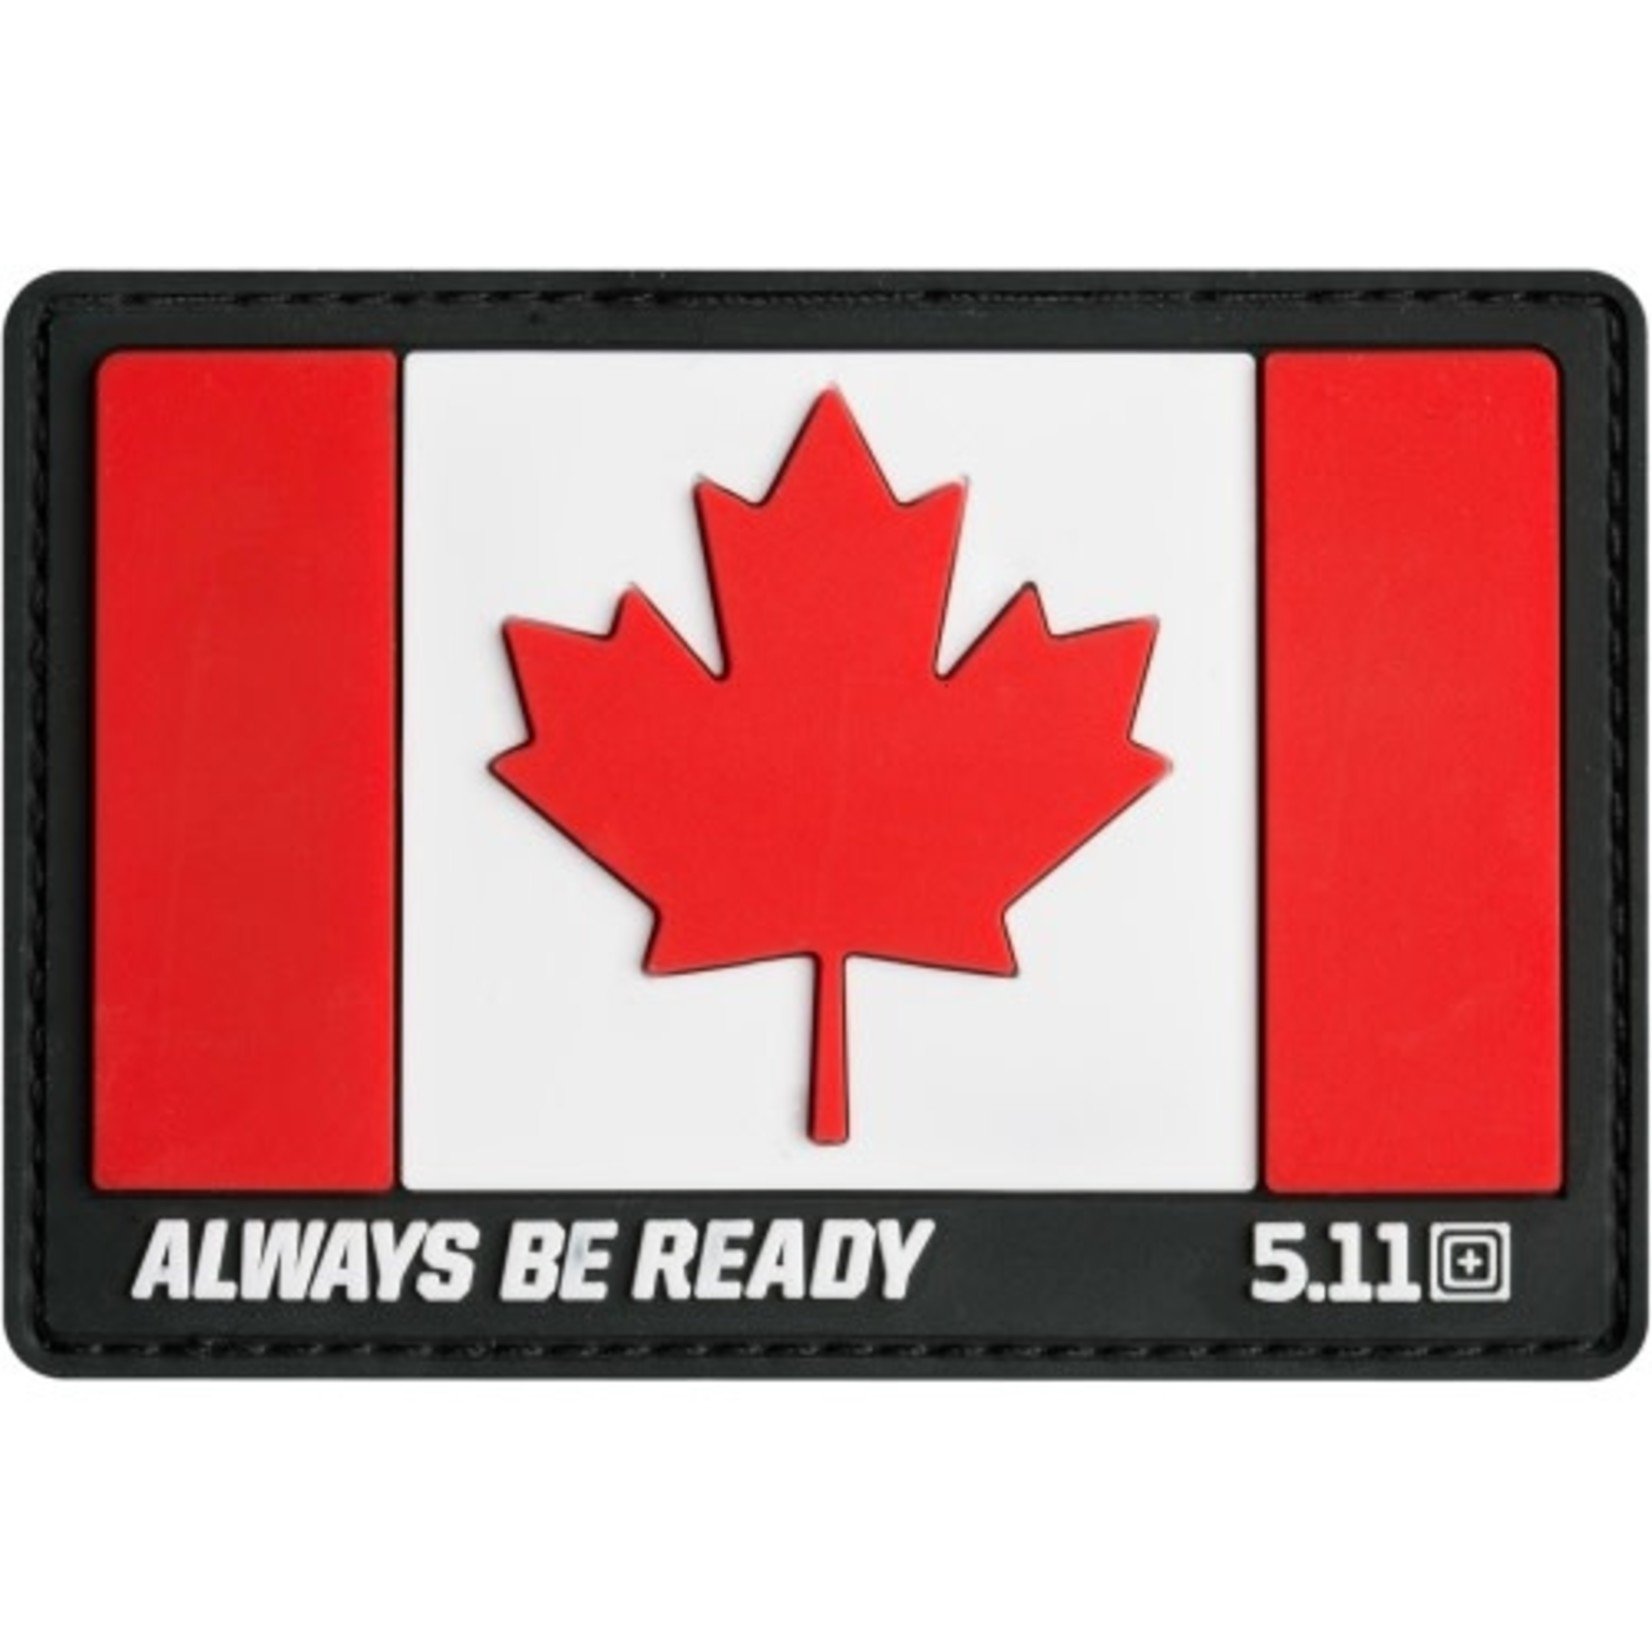 5.11 Tactical 5.11 Canada Flag Rubber Patch